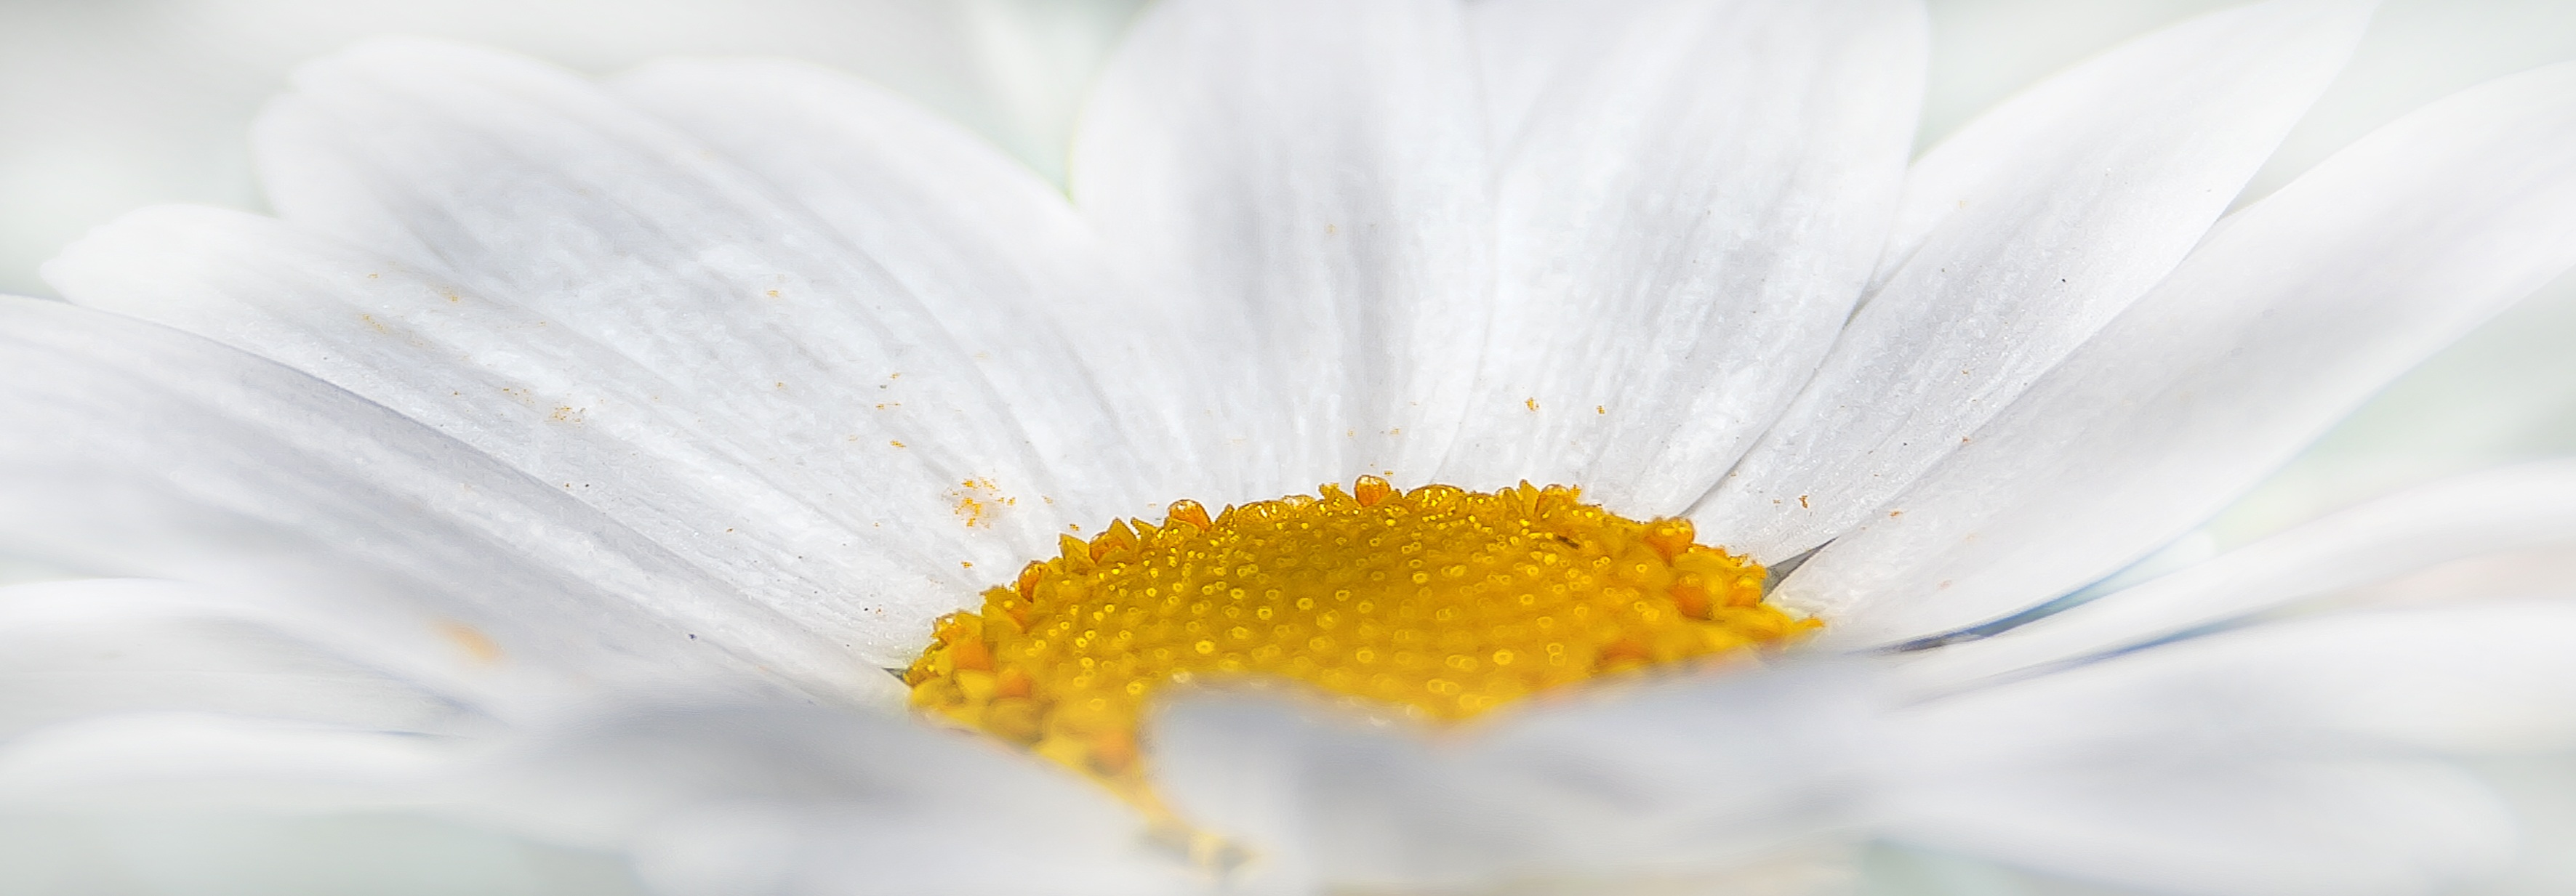 free stock photos of white flower · pexels, Natural flower